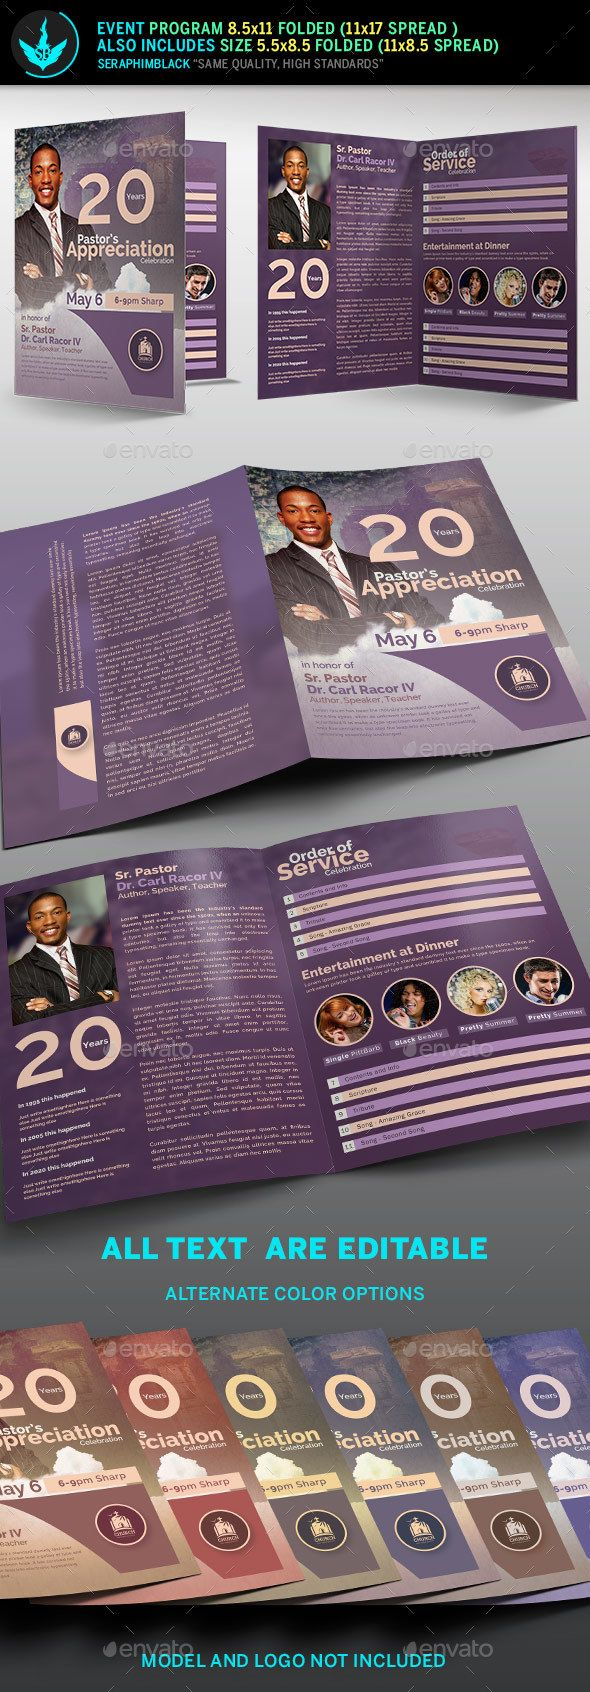 modern pastors appreciation program template 2 pinterest program